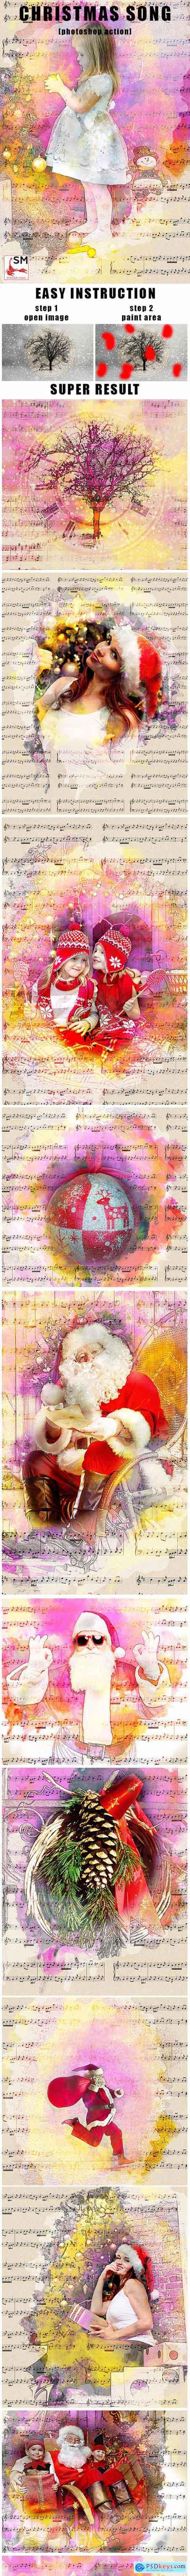 Christmas Song Photoshop Action 21141296